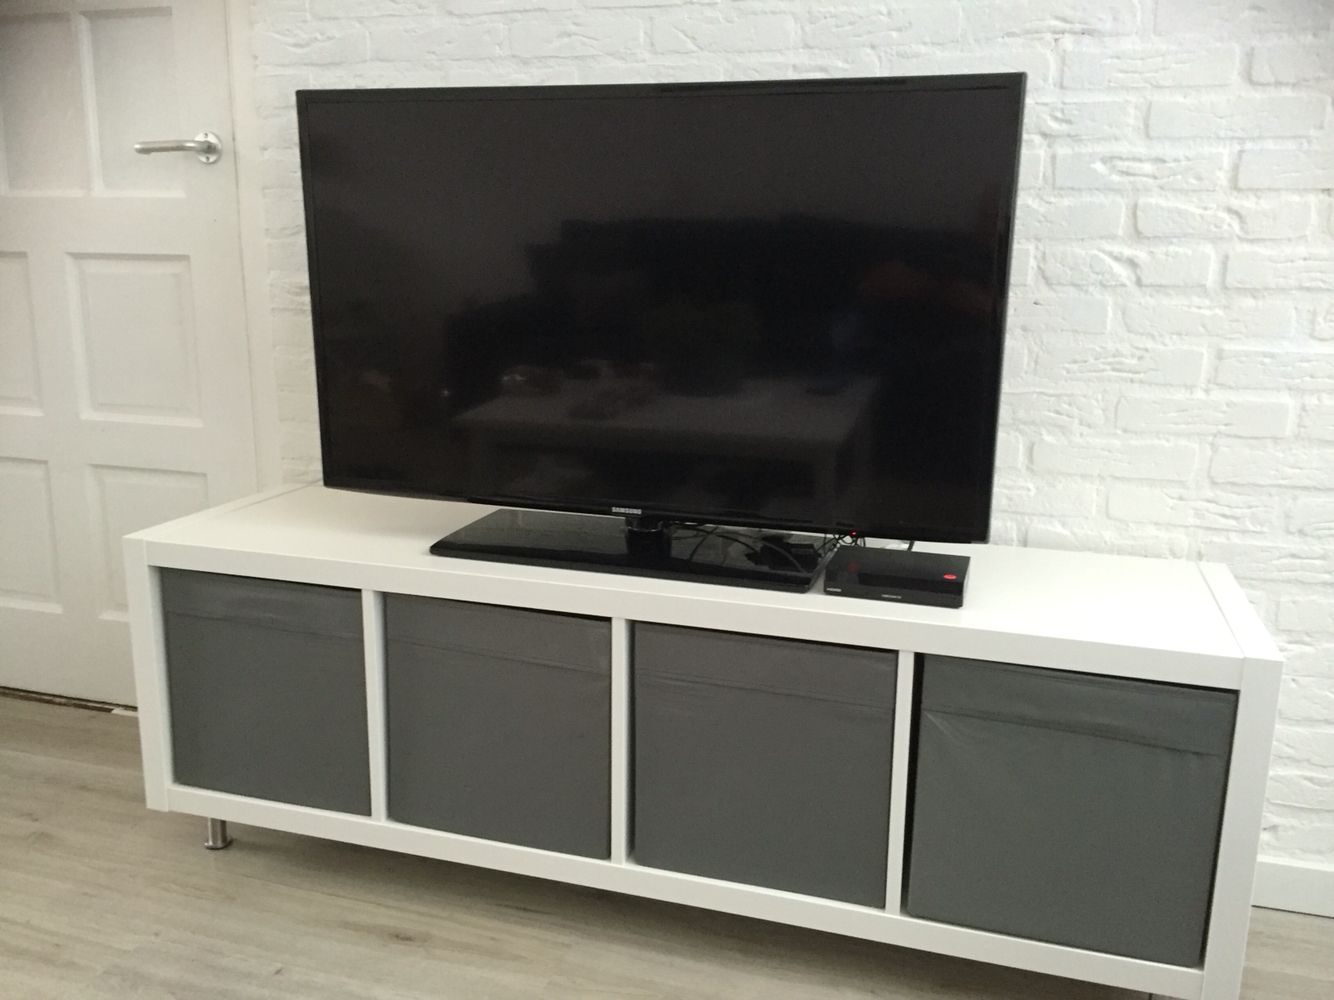 van een ikea kallax kast een tv meubel gemaakt kallax. Black Bedroom Furniture Sets. Home Design Ideas